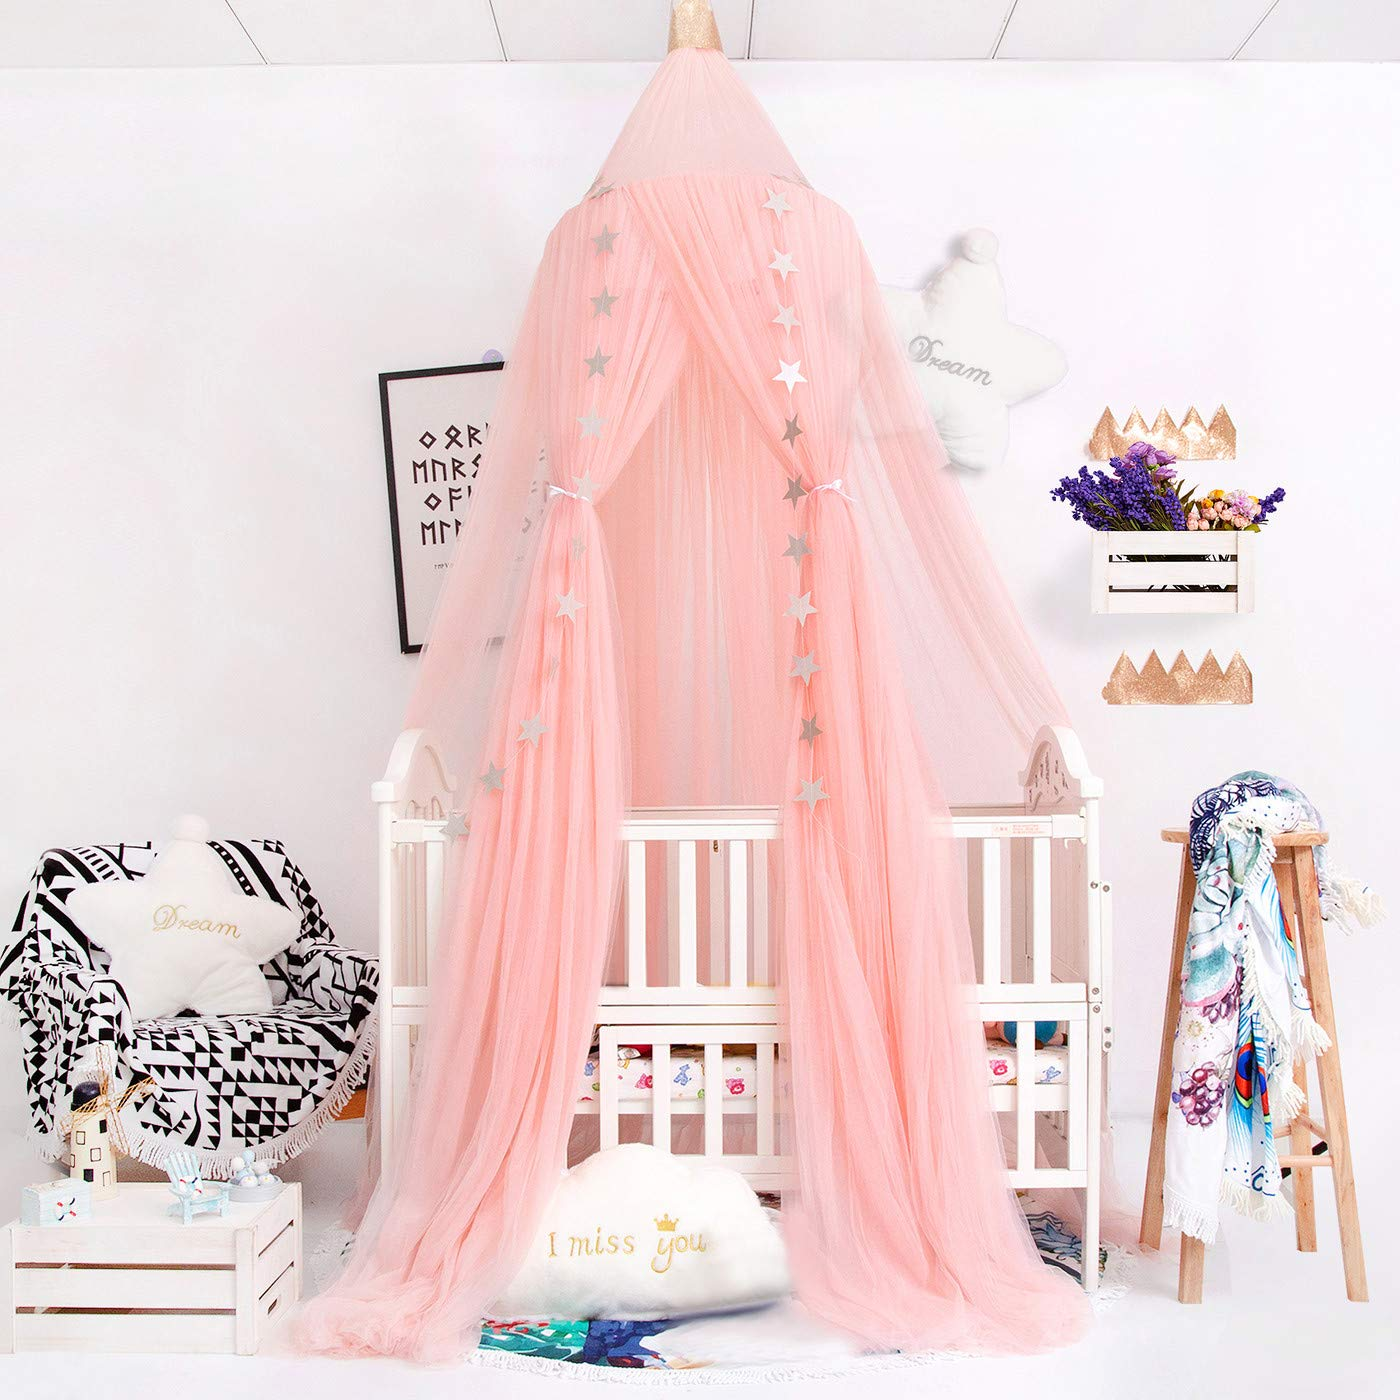 VERNASSA Canopy for Kids Bed, Bed Canopy, Xmas Gifts Princess Mosquito Netting Dome for Baby Crib Nook Castle Game Tent Nursery Play Room Christmas Decor (Pink)